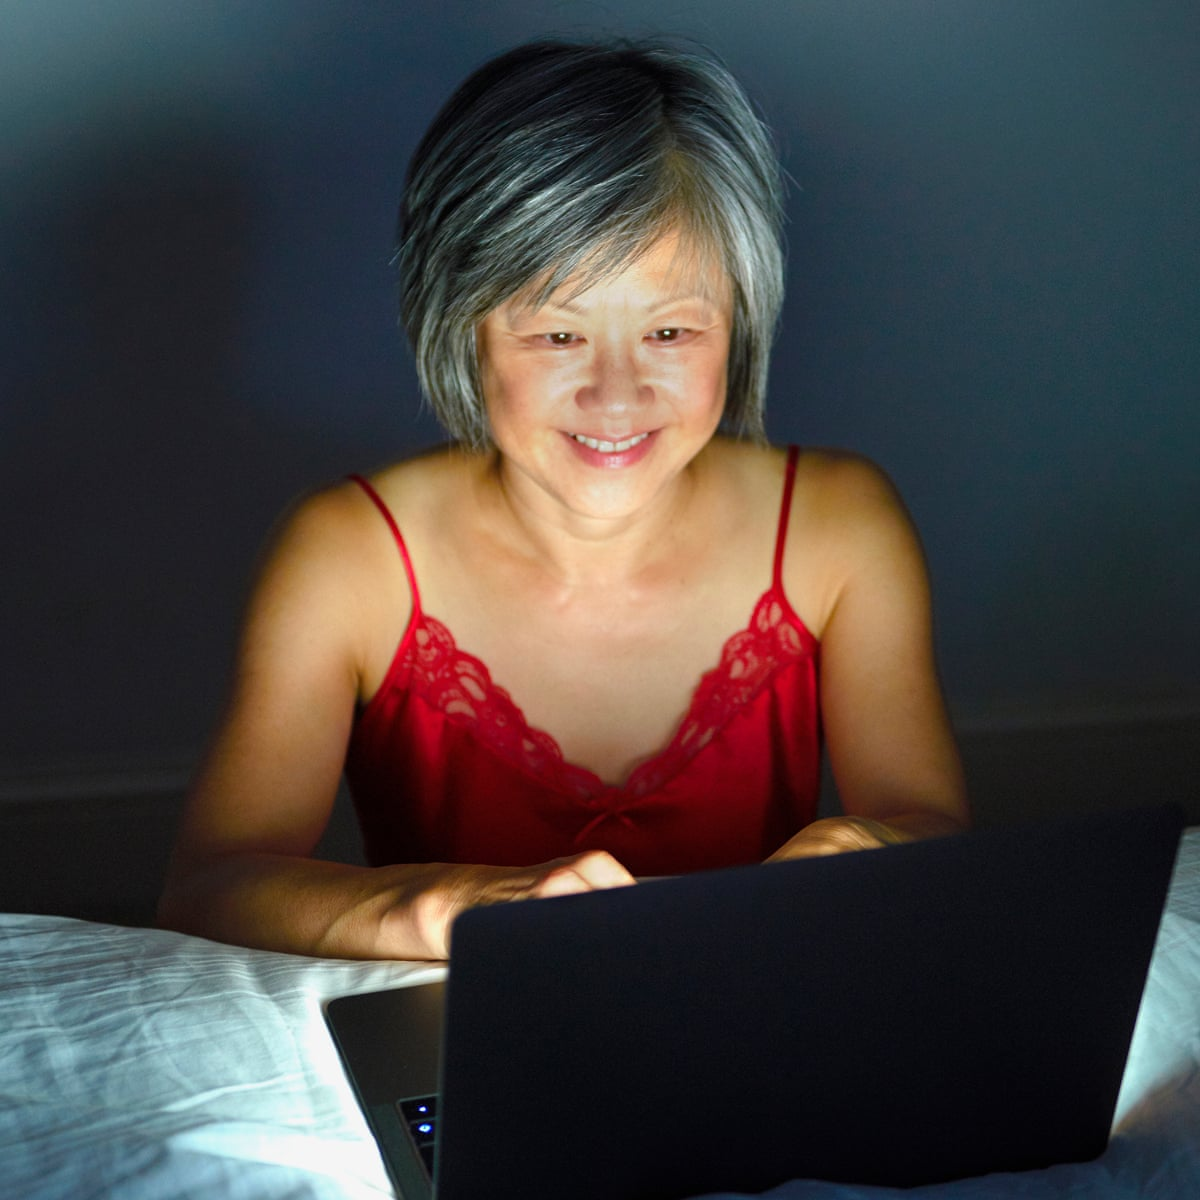 Year old 60 women single Activities for